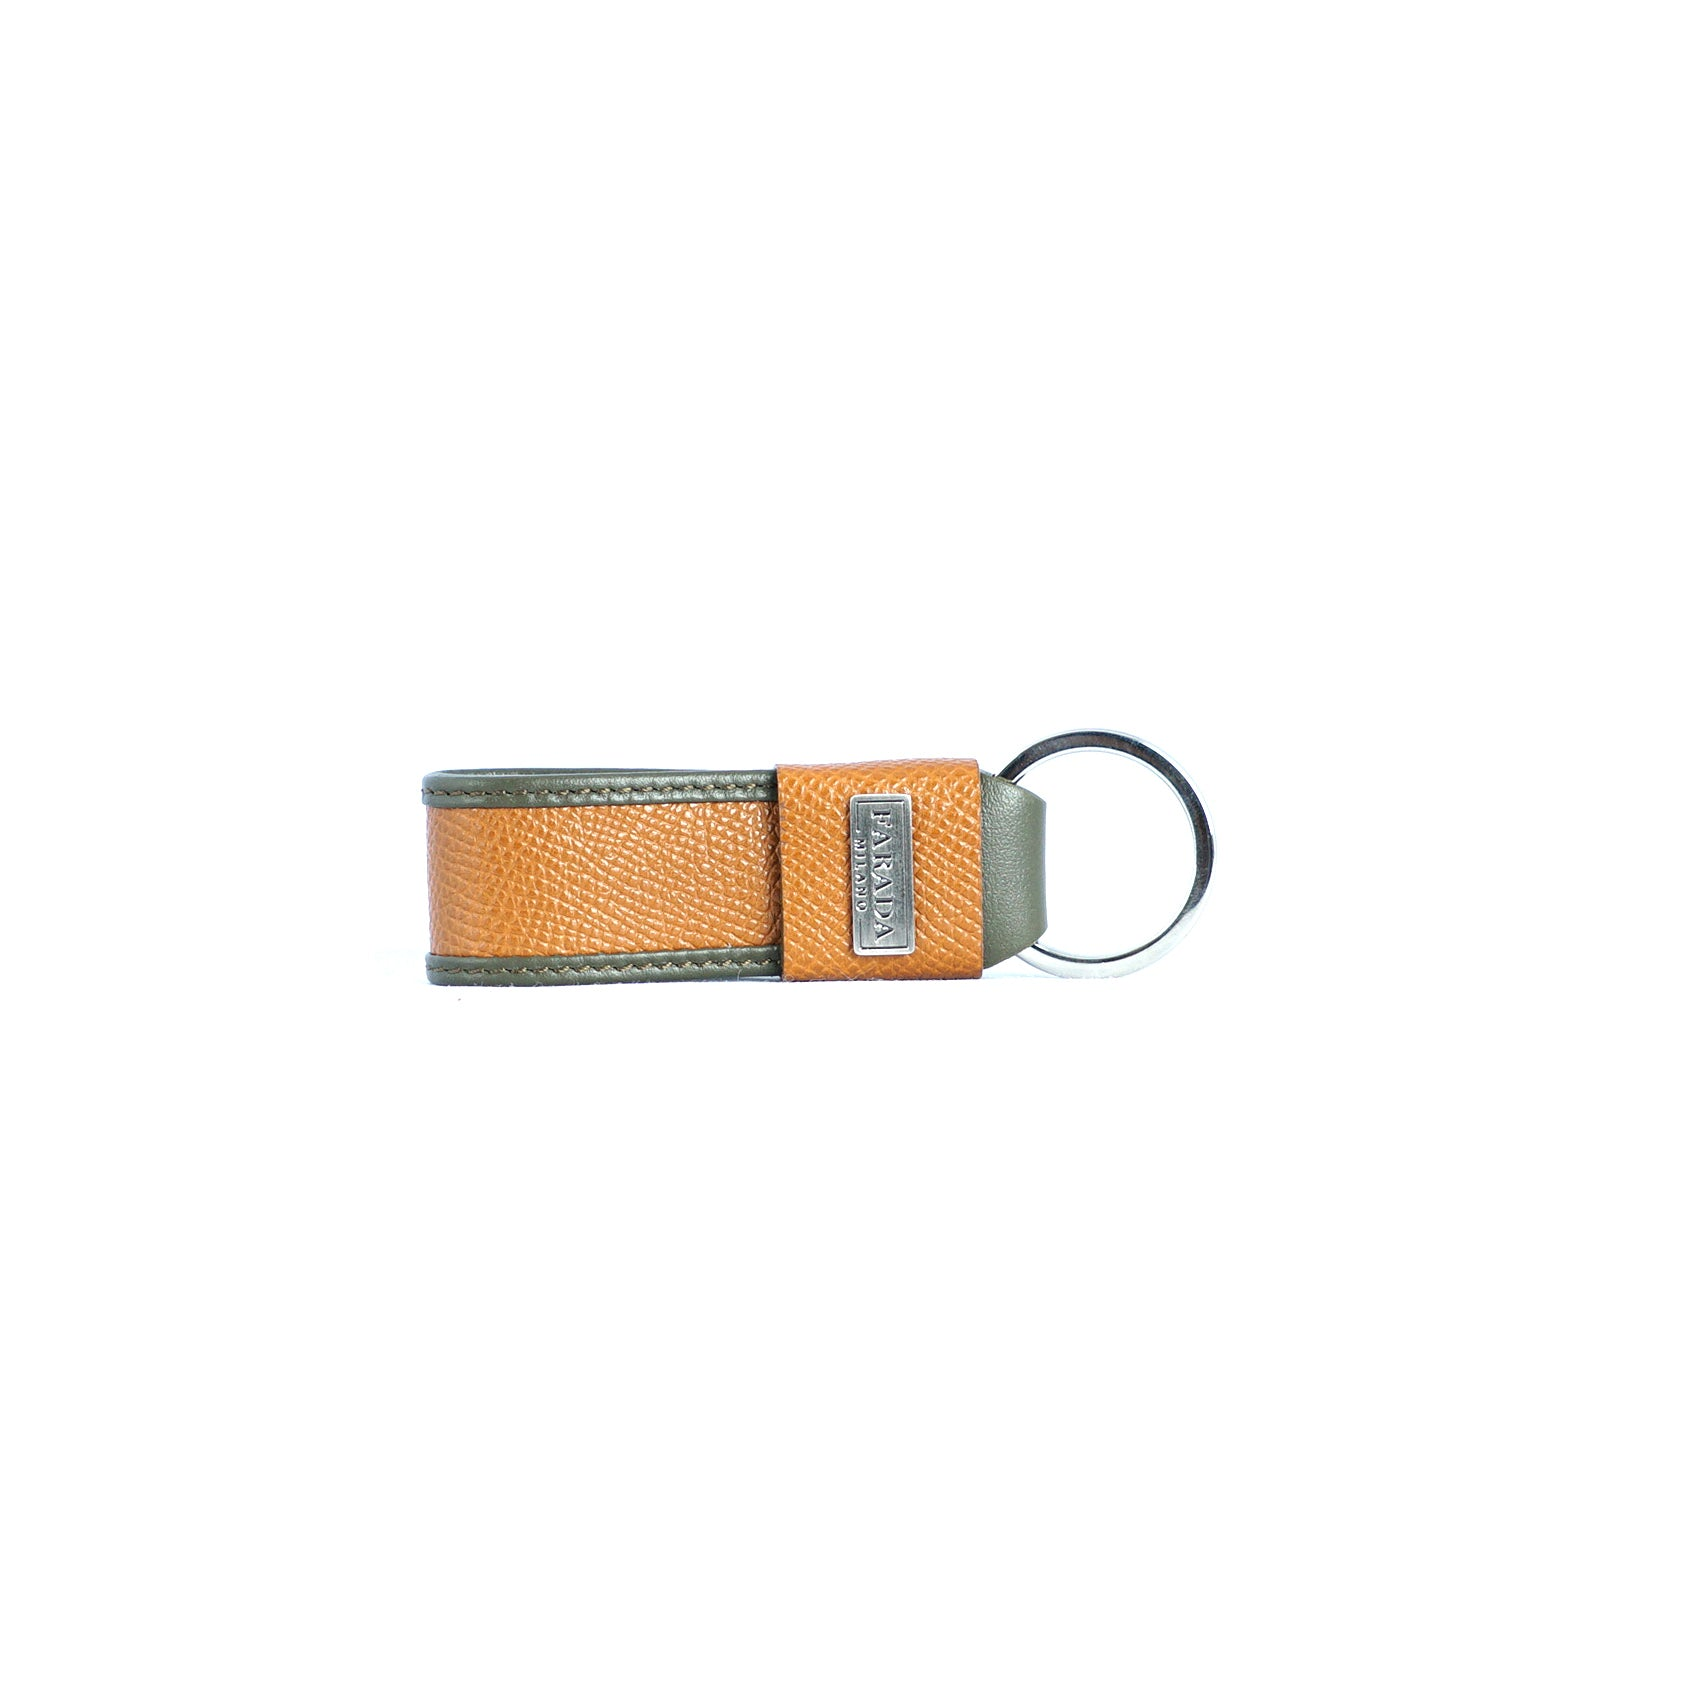 Olive Tan Saffiano Key Chain